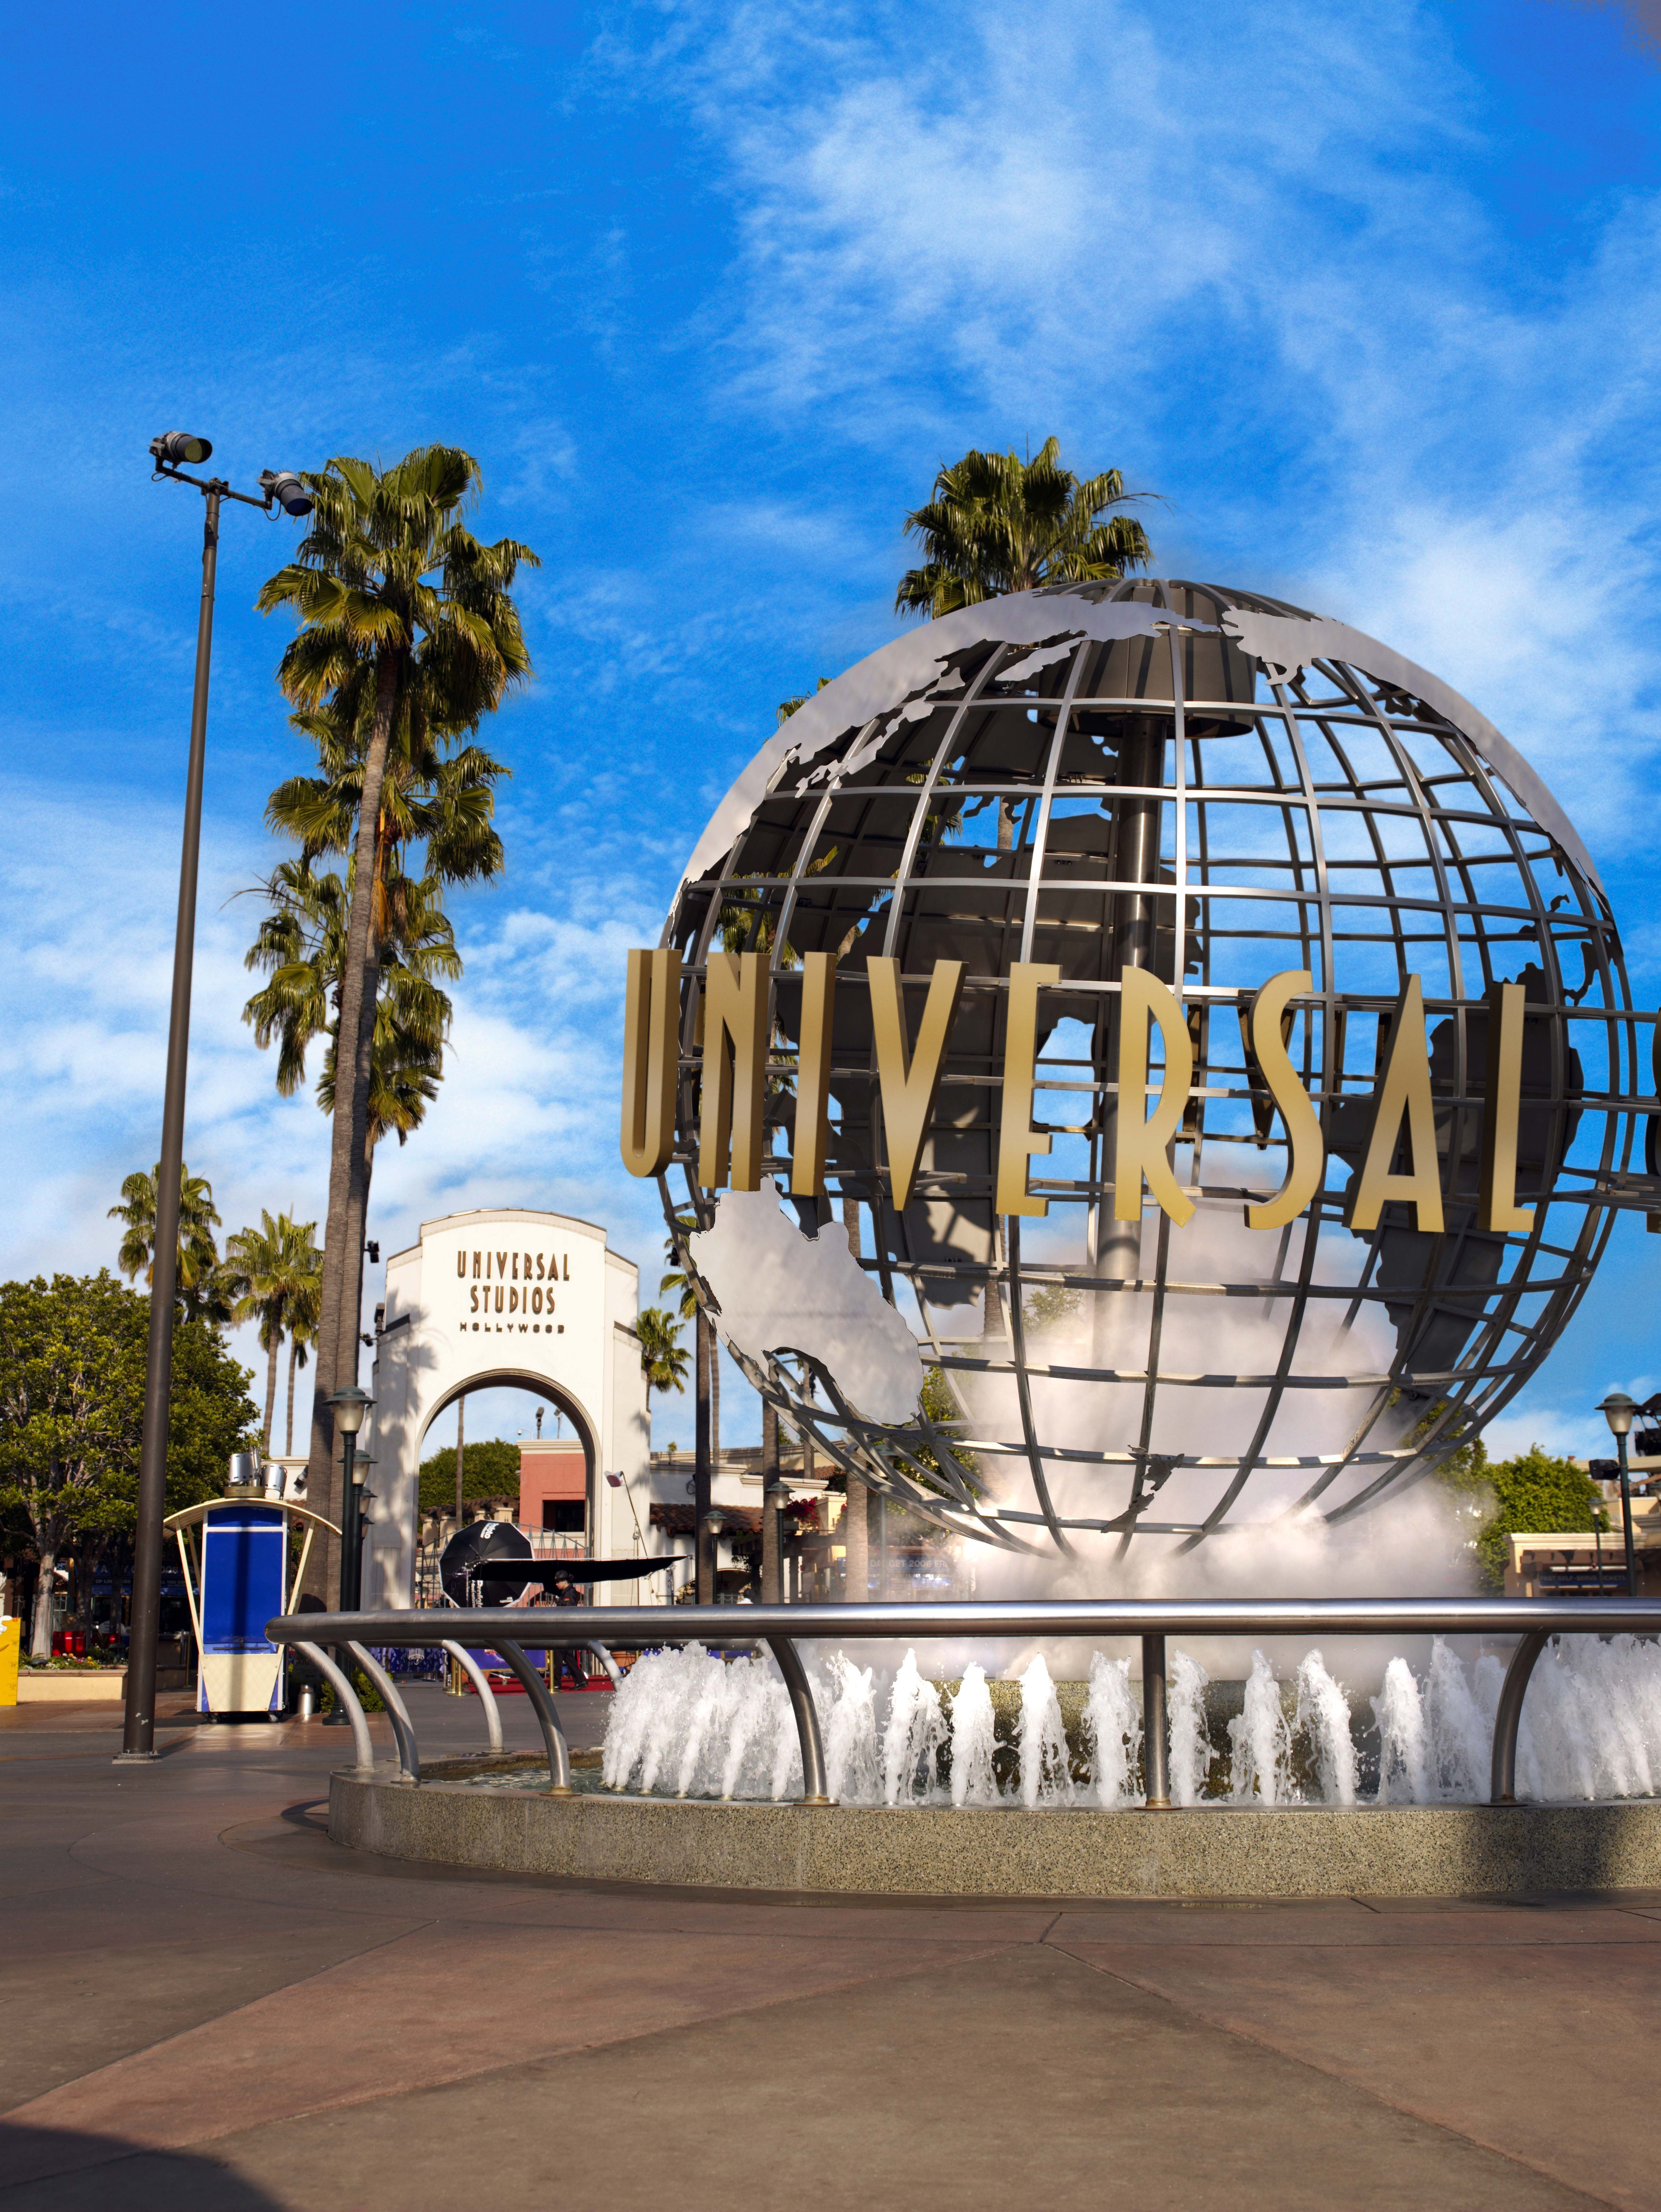 Costco Is Selling 3-Visit Tickets To Universal Studios For $140